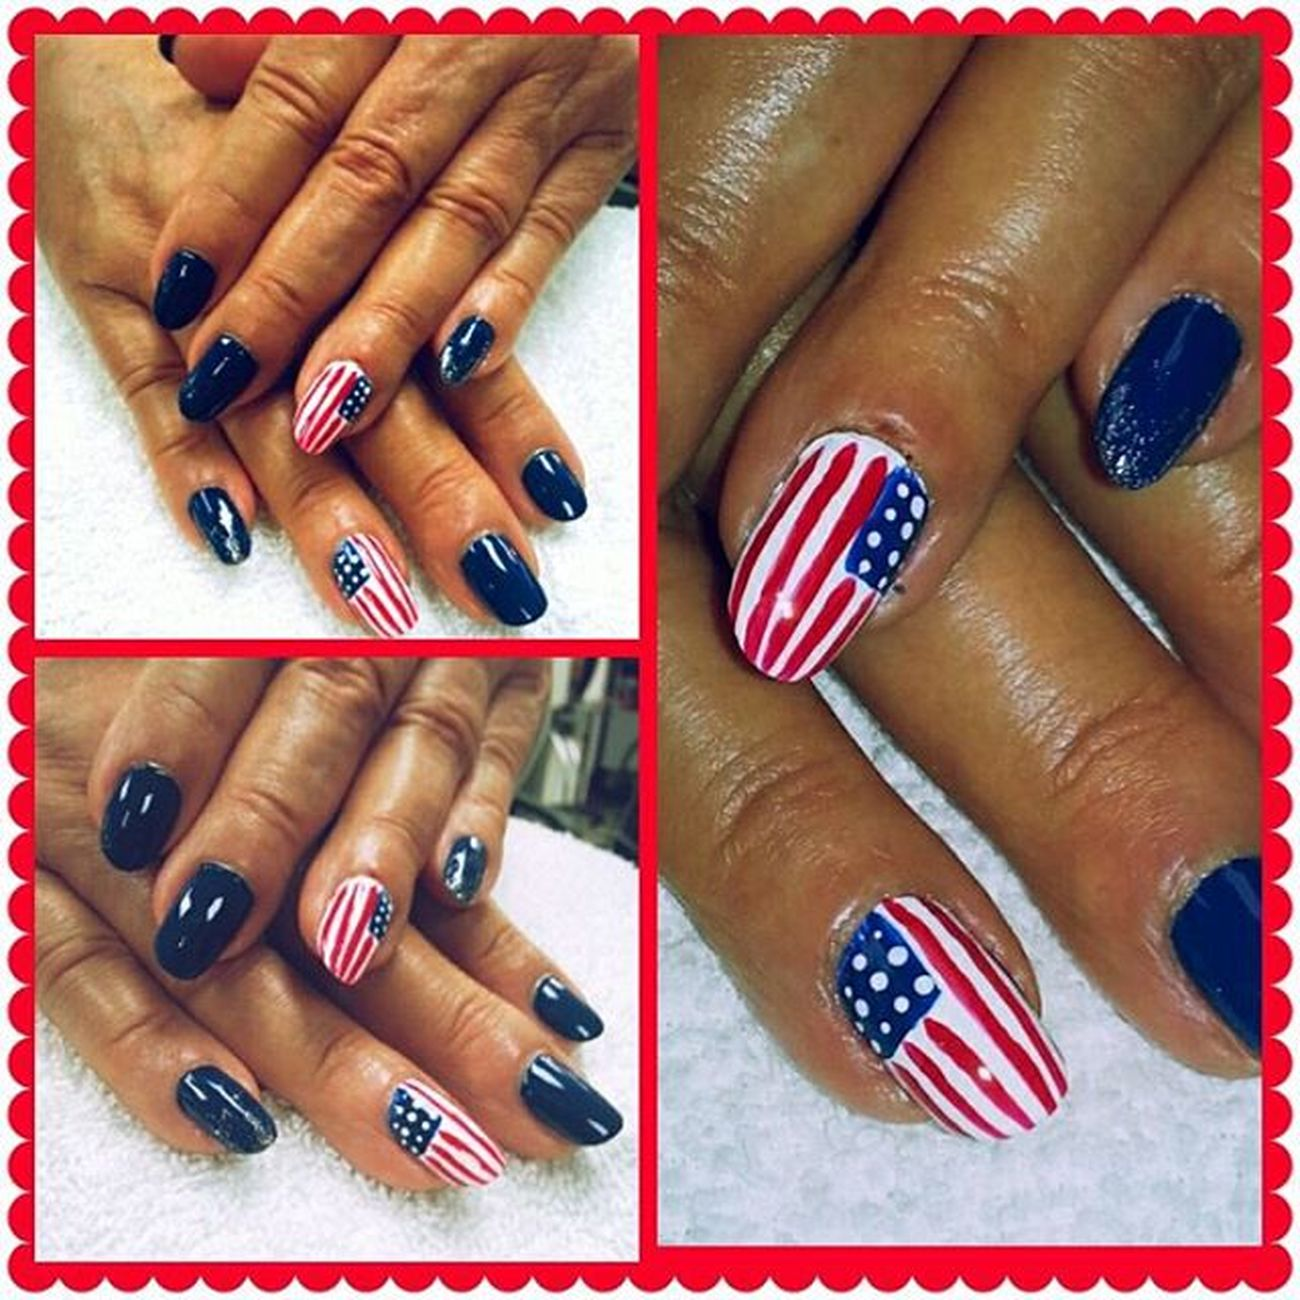 Beautybytamm Fourthofjuly Nails Mainstreethaircompany huntingtonbeachpier